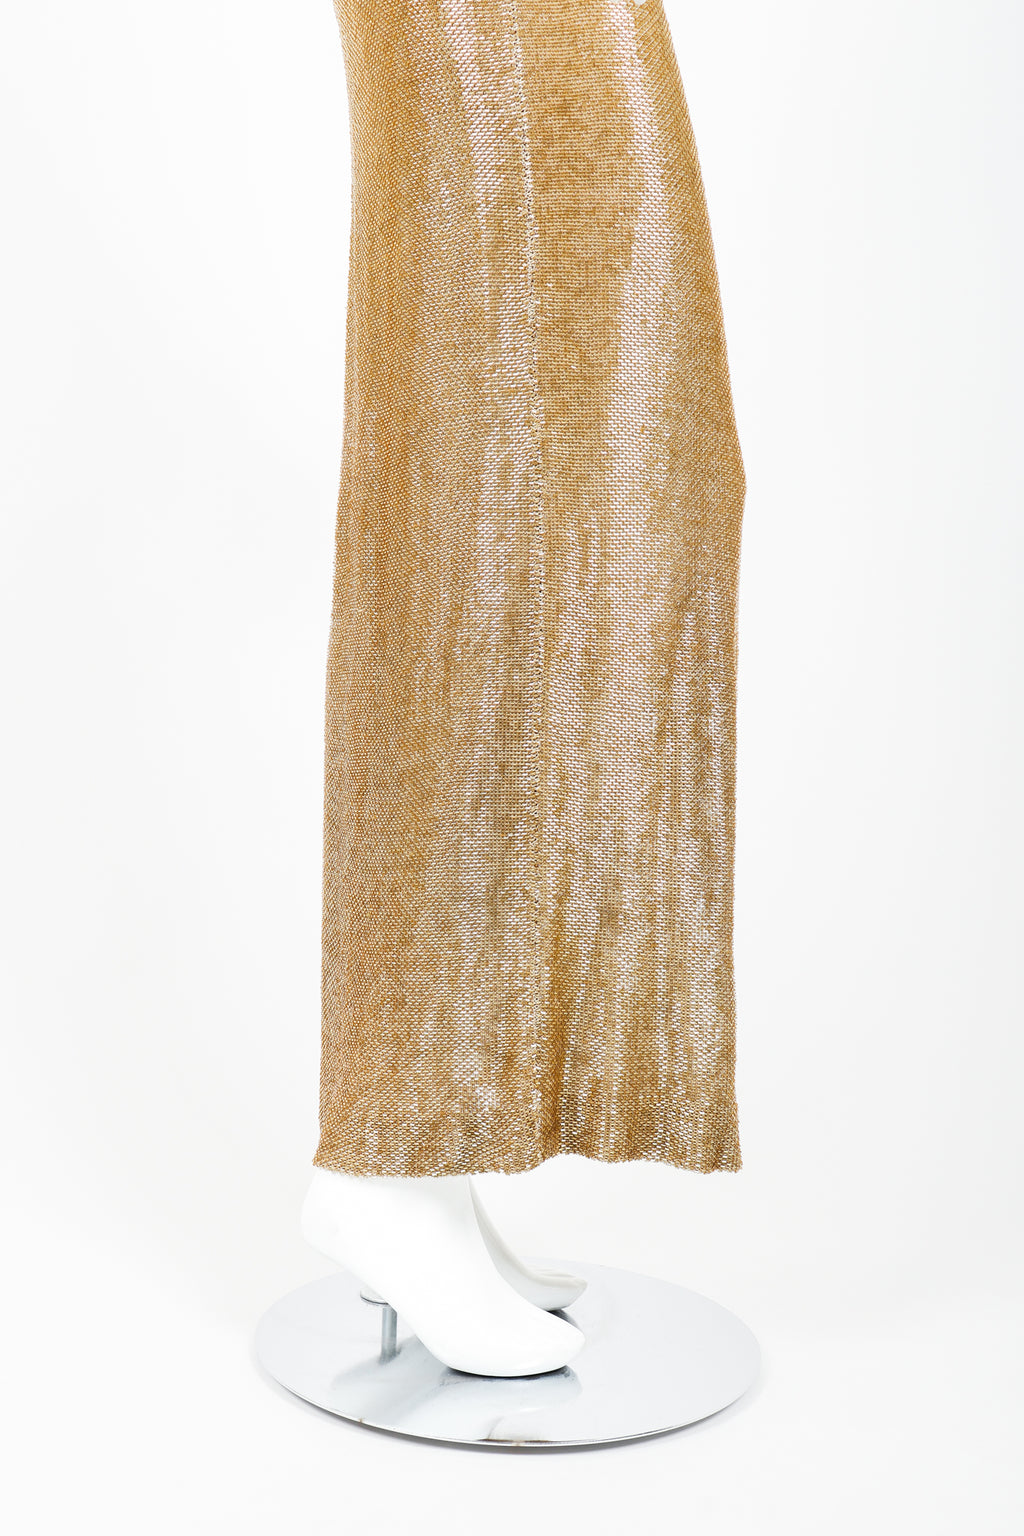 Vintage Fred Hayman Liquid Gold Beaded Gown on Mannequin skirt at Recess